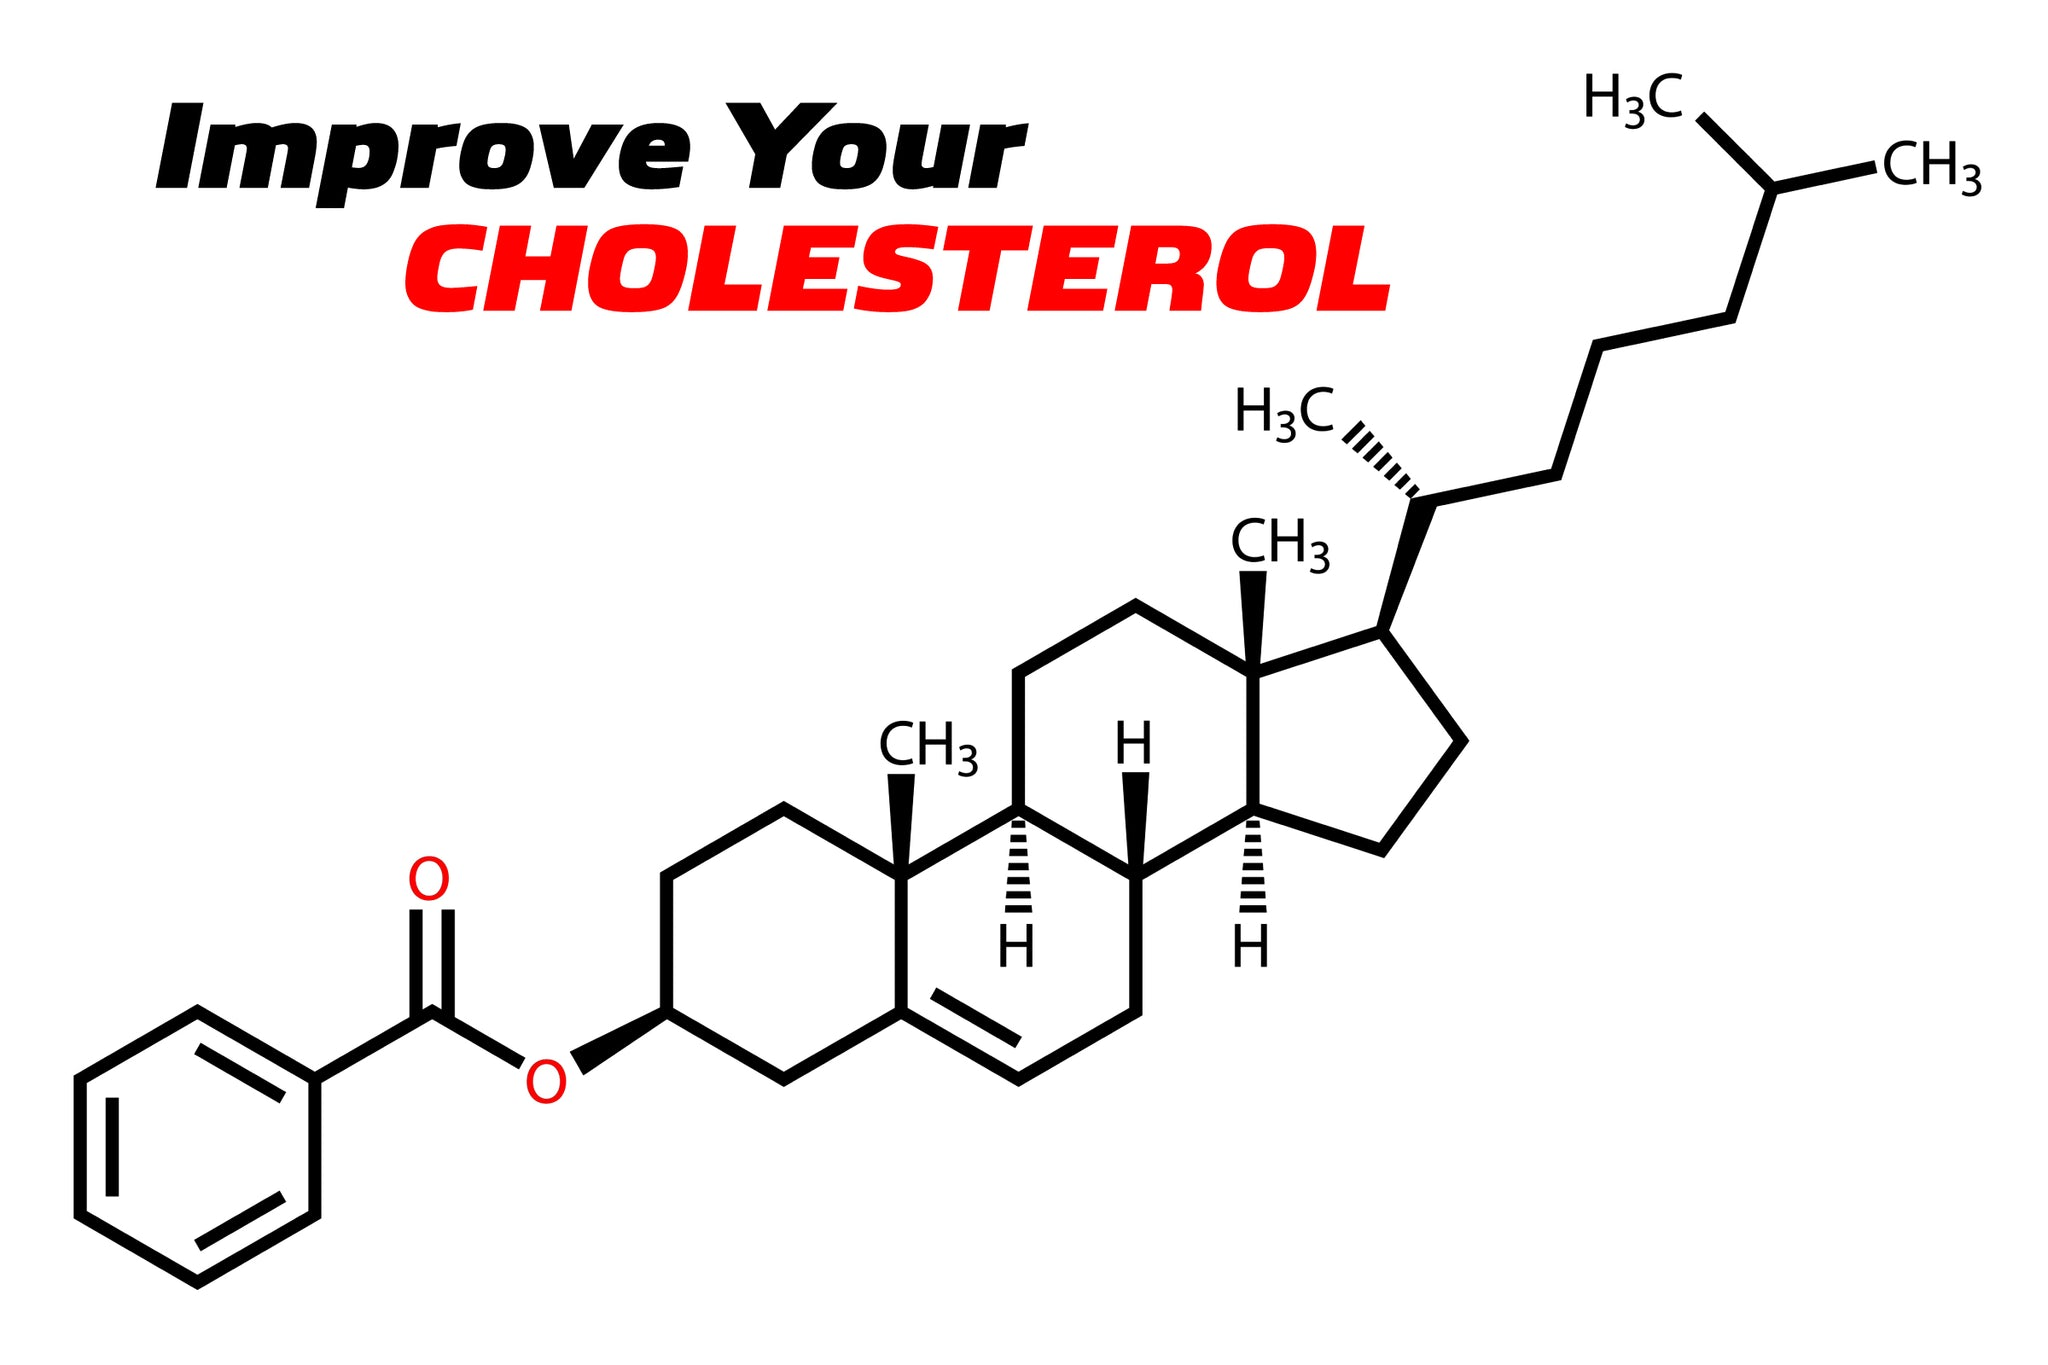 How To Take Control of Your Cholesterol